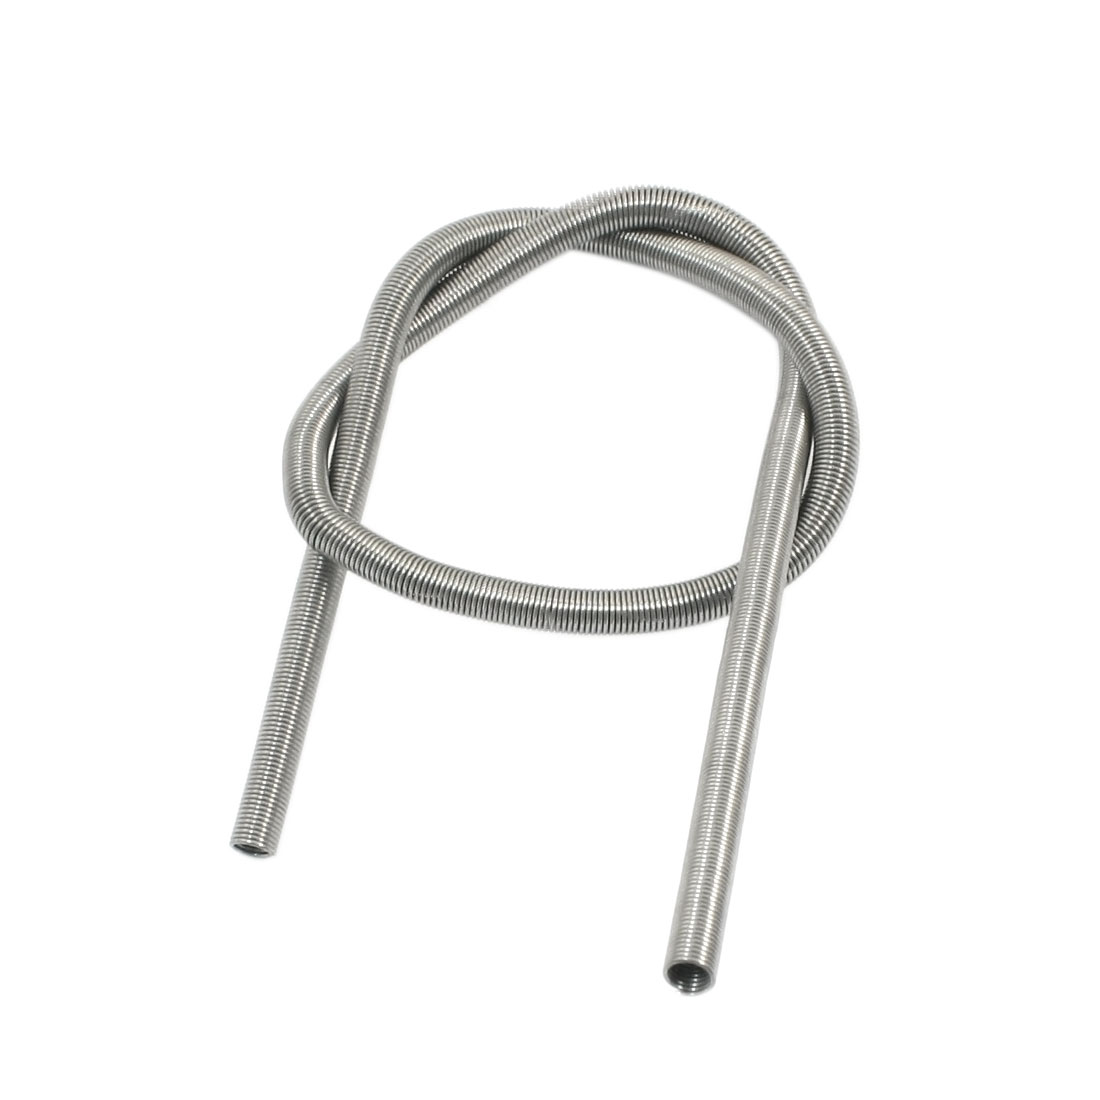 405x5.5mm Forging Pottery Heating Heater Element Wire Coil 1KW AC220V